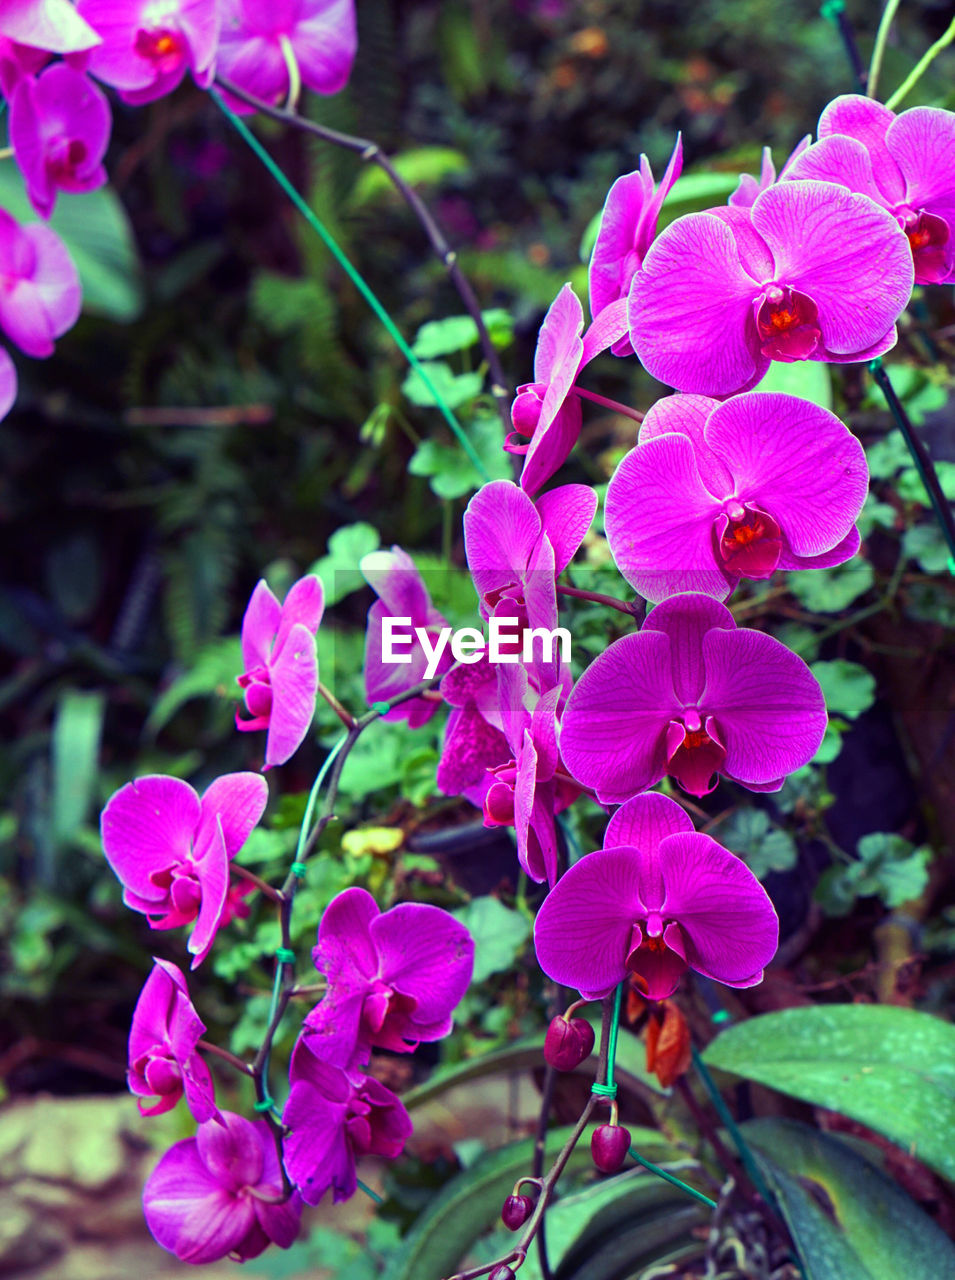 flower, pink color, growth, petal, beauty in nature, plant, nature, focus on foreground, no people, fragility, flower head, day, blooming, outdoors, close-up, freshness